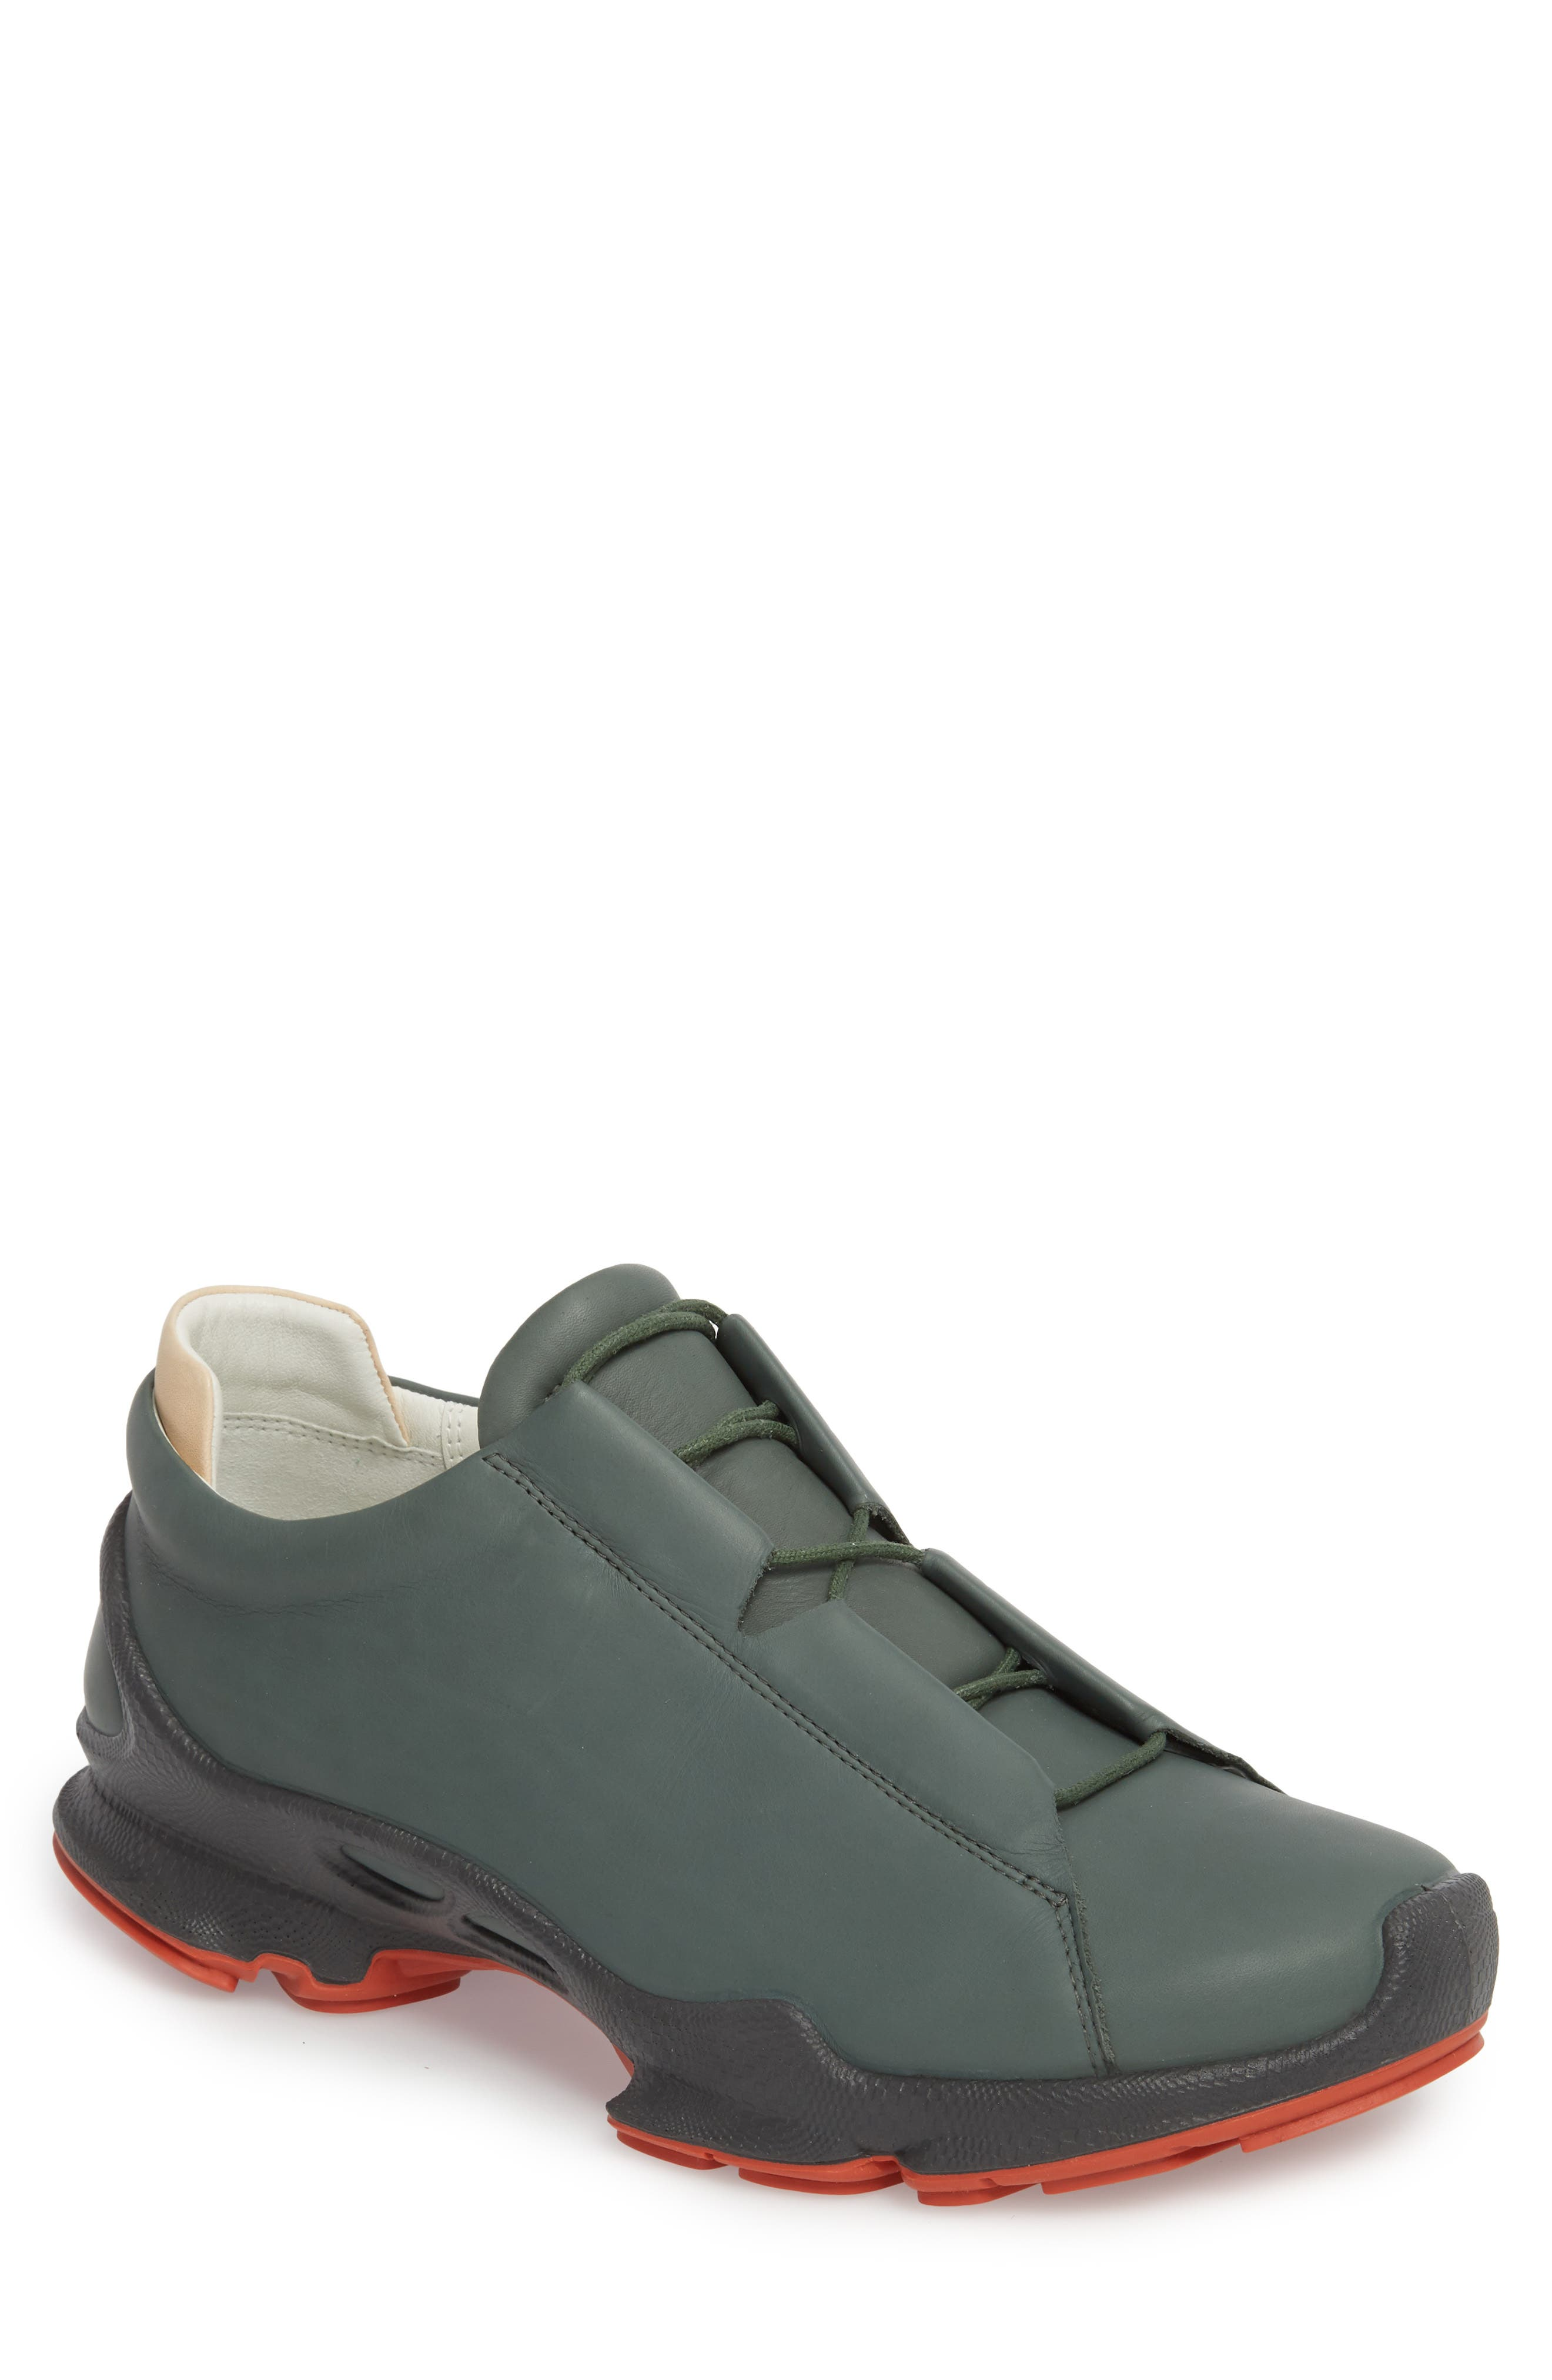 BIOM C Low Top Sneaker,                             Main thumbnail 1, color,                             Military Sage Leather